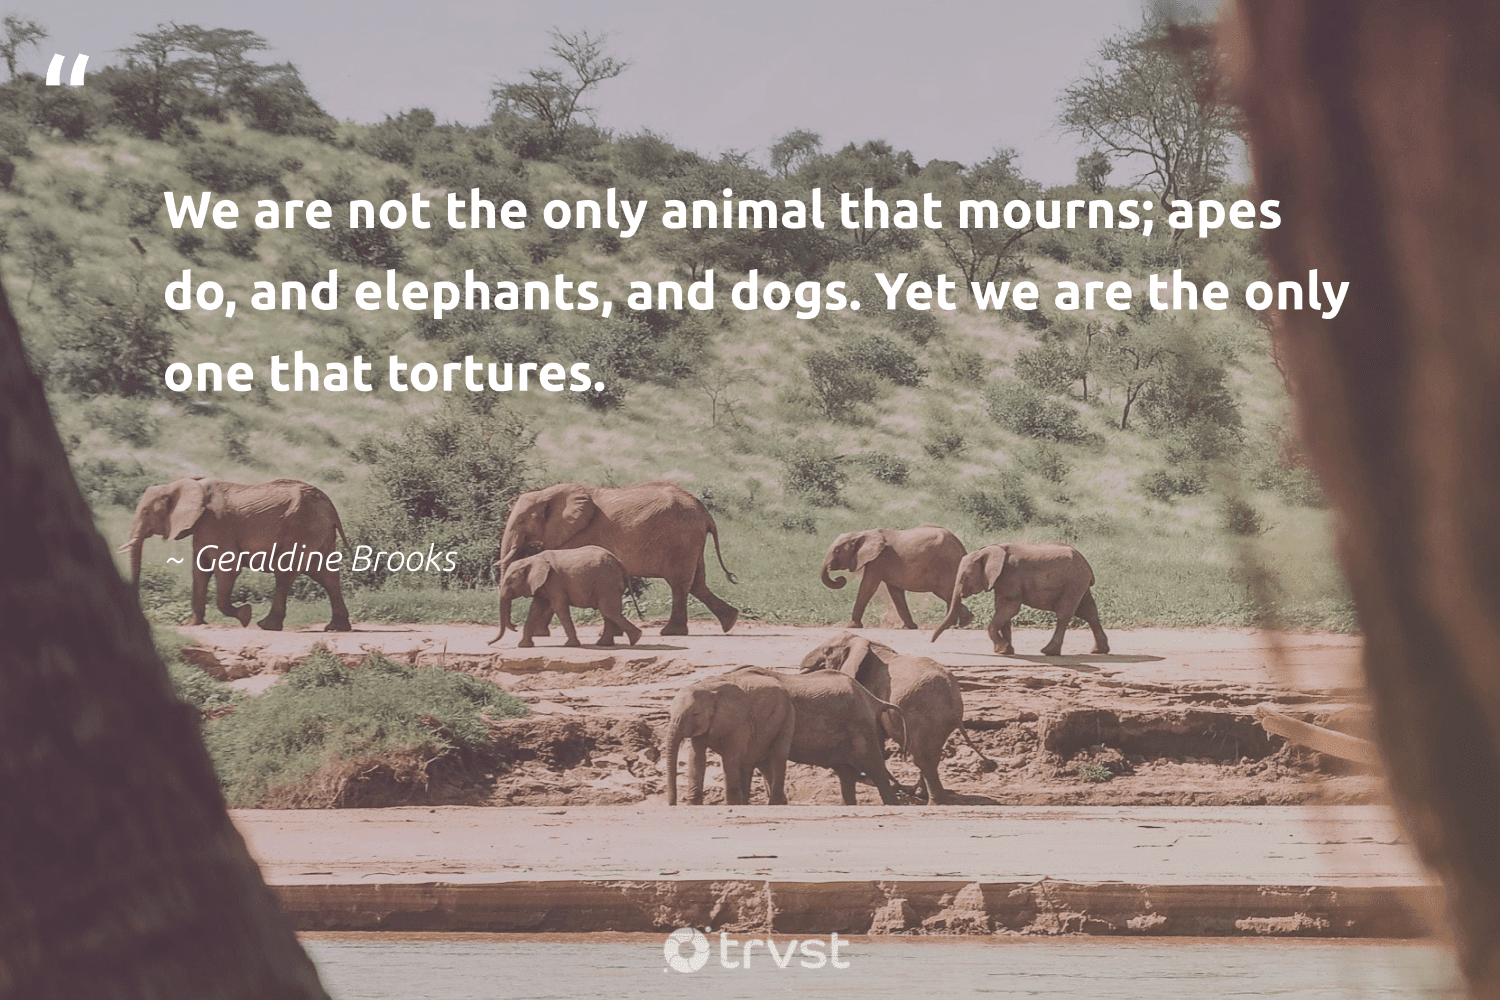 """""""We are not the only animal that mourns; apes do, and elephants, and dogs. Yet we are the only one that tortures.""""  - Geraldine Brooks #trvst #quotes #animal #elephants #wildlife #naturelovers #biology #collectiveaction #animallovers #elephant #forscience #socialchange"""